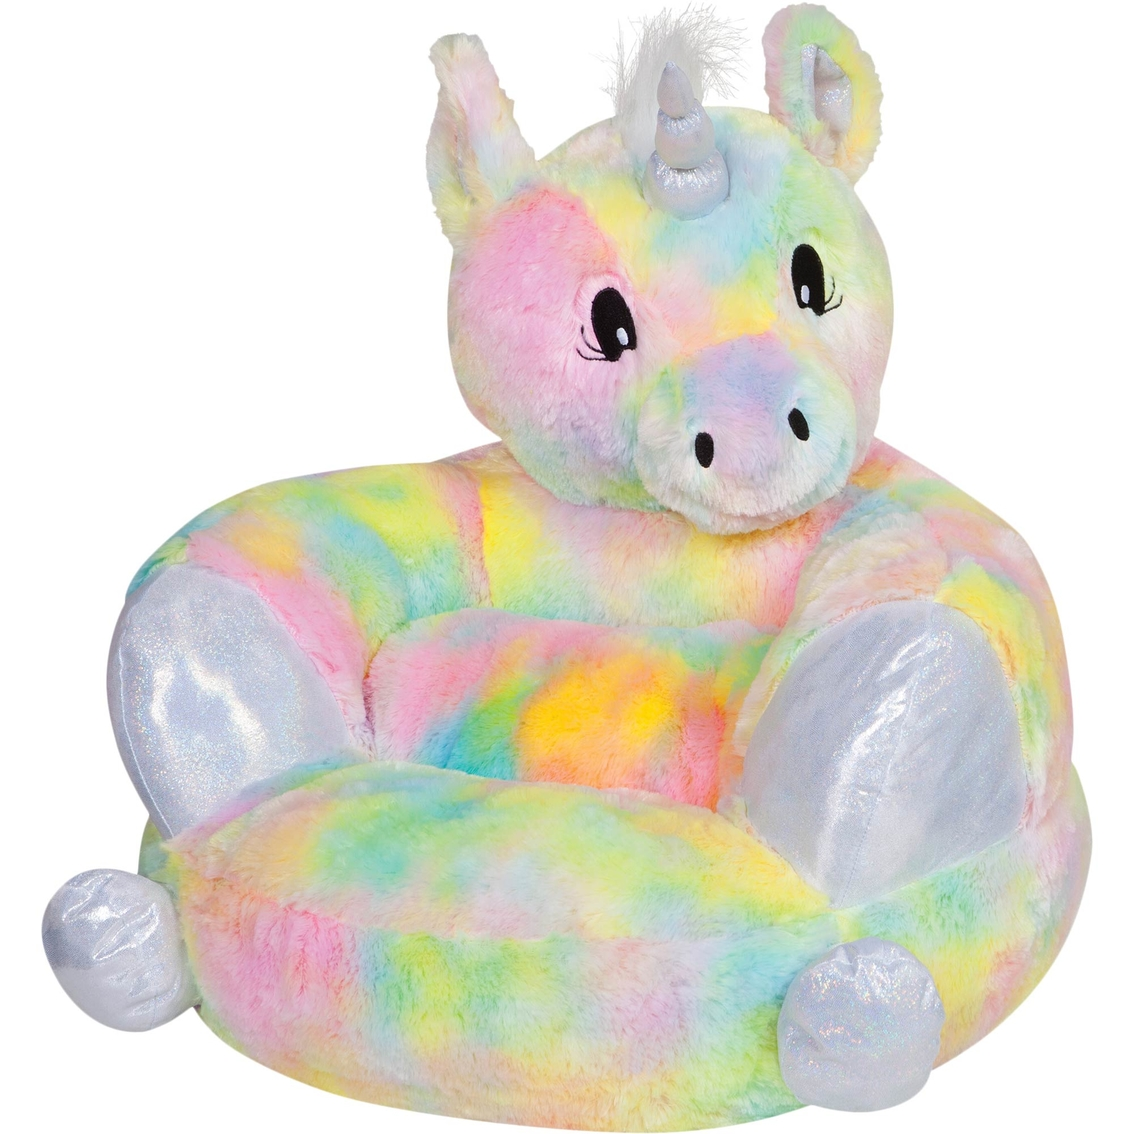 UNICORN collectable plush toddler chair seat cushion nursery bedroom living room